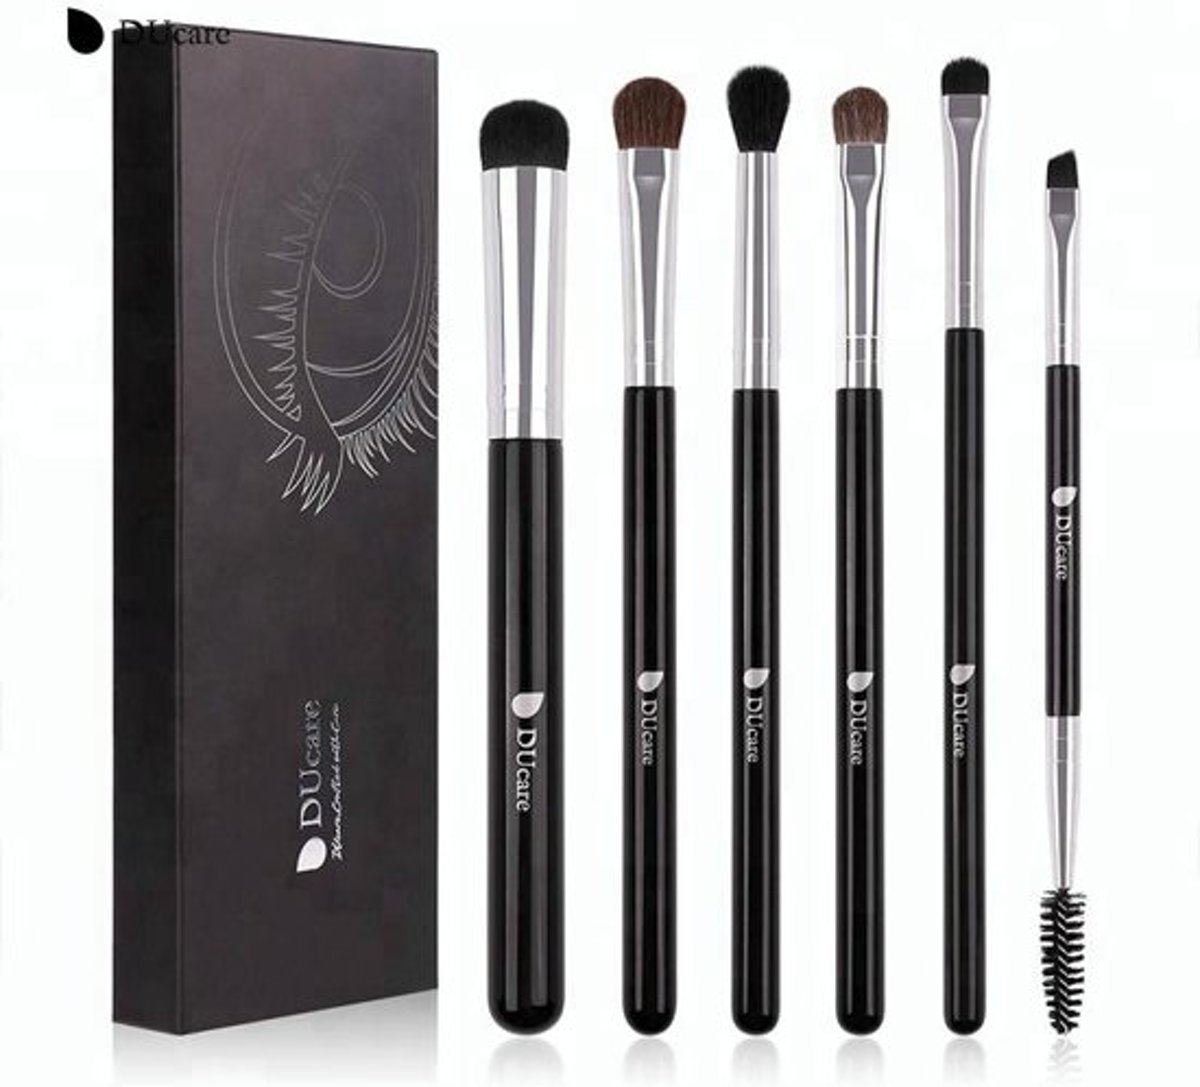 6-delige Make-Up Kwastenset - Ducare - Make-Up Set Professioneel - Cosmetica